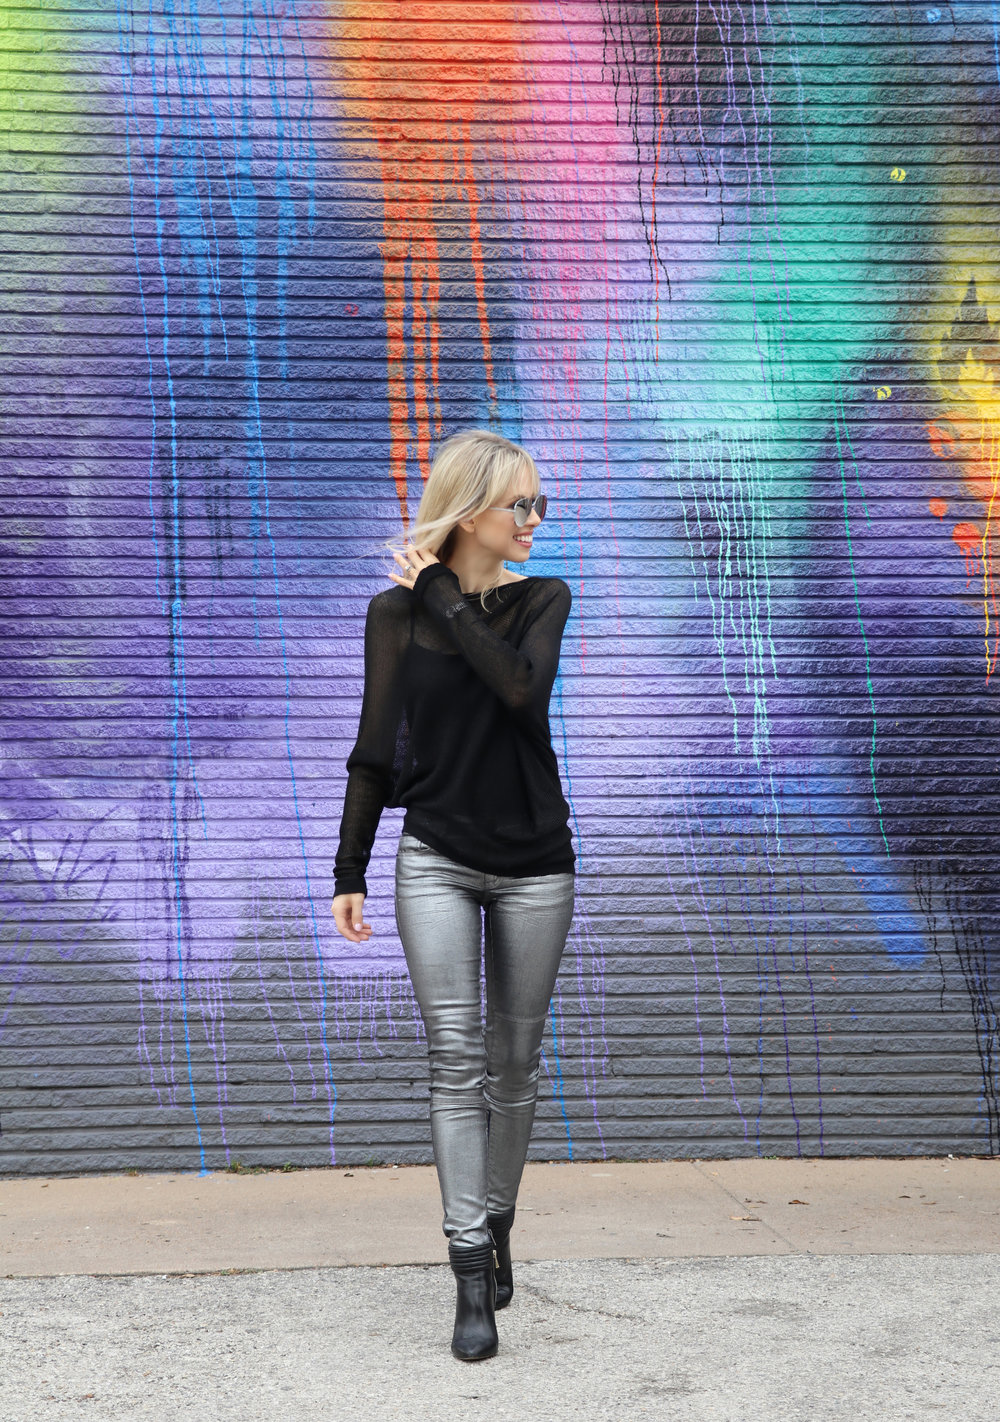 sweater & pants: BCBGeneration, boots: Ann Taylor, watch: swatch, sunglasses: stolen from Ben